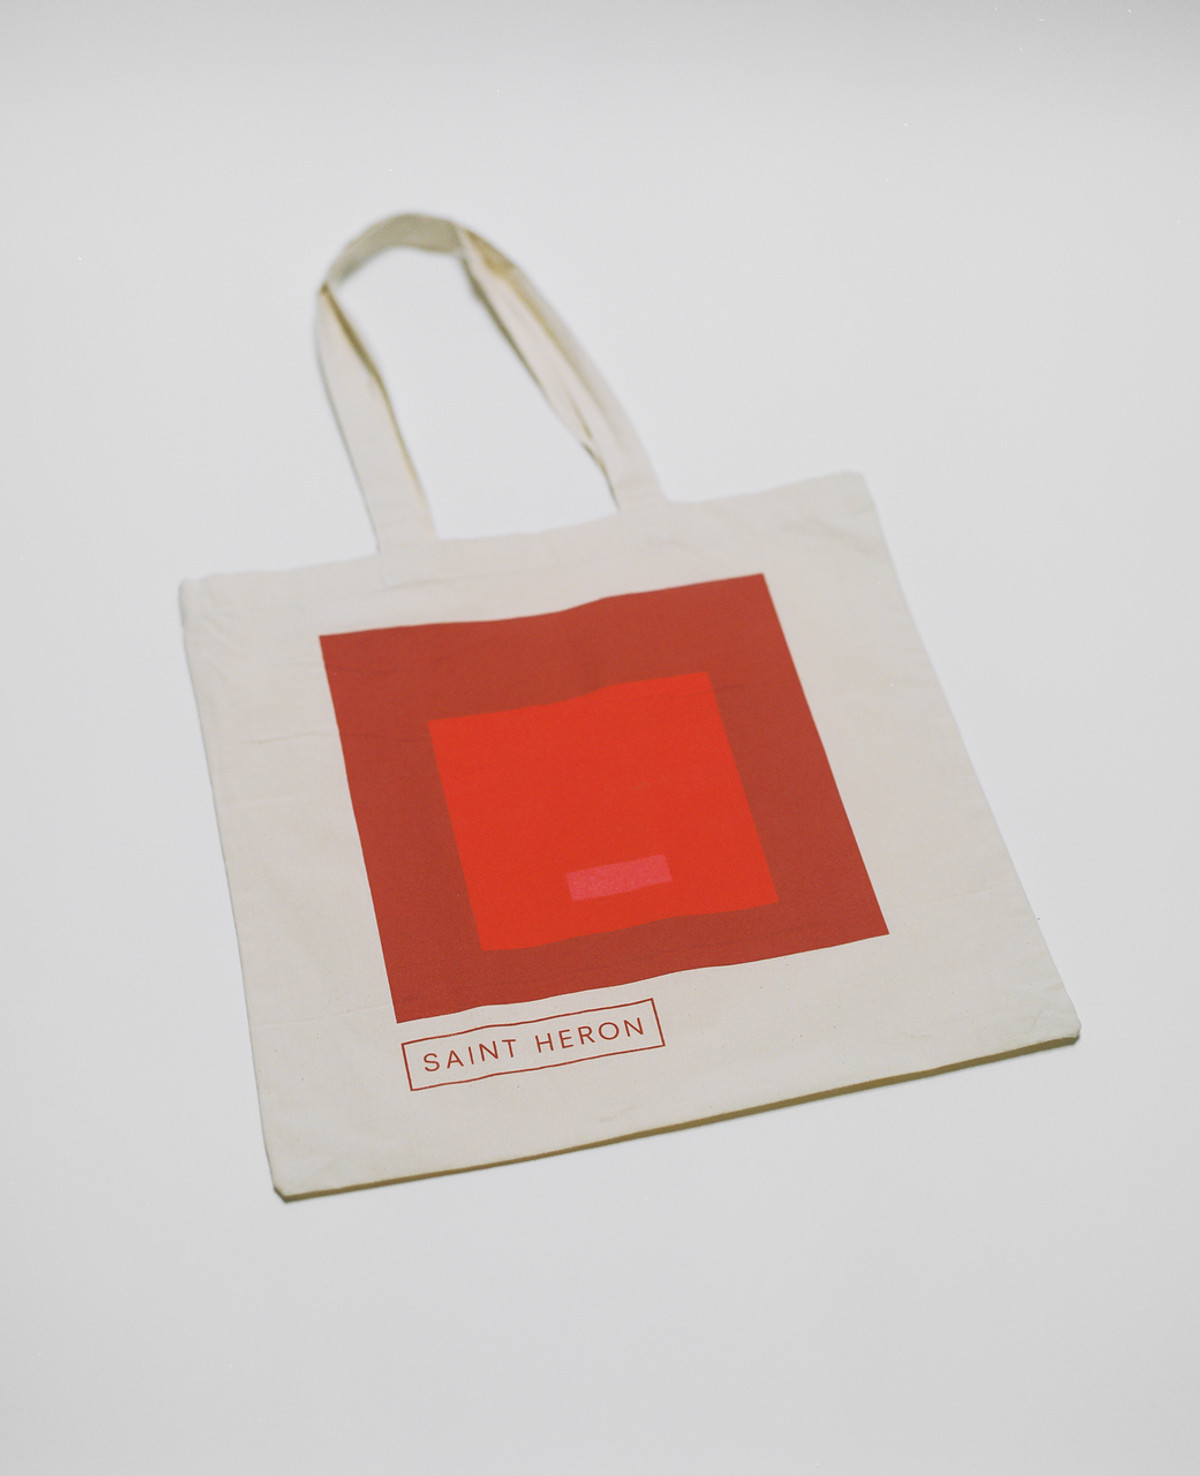 Saint Heron Tote Bag - Square (SOLD OUT)